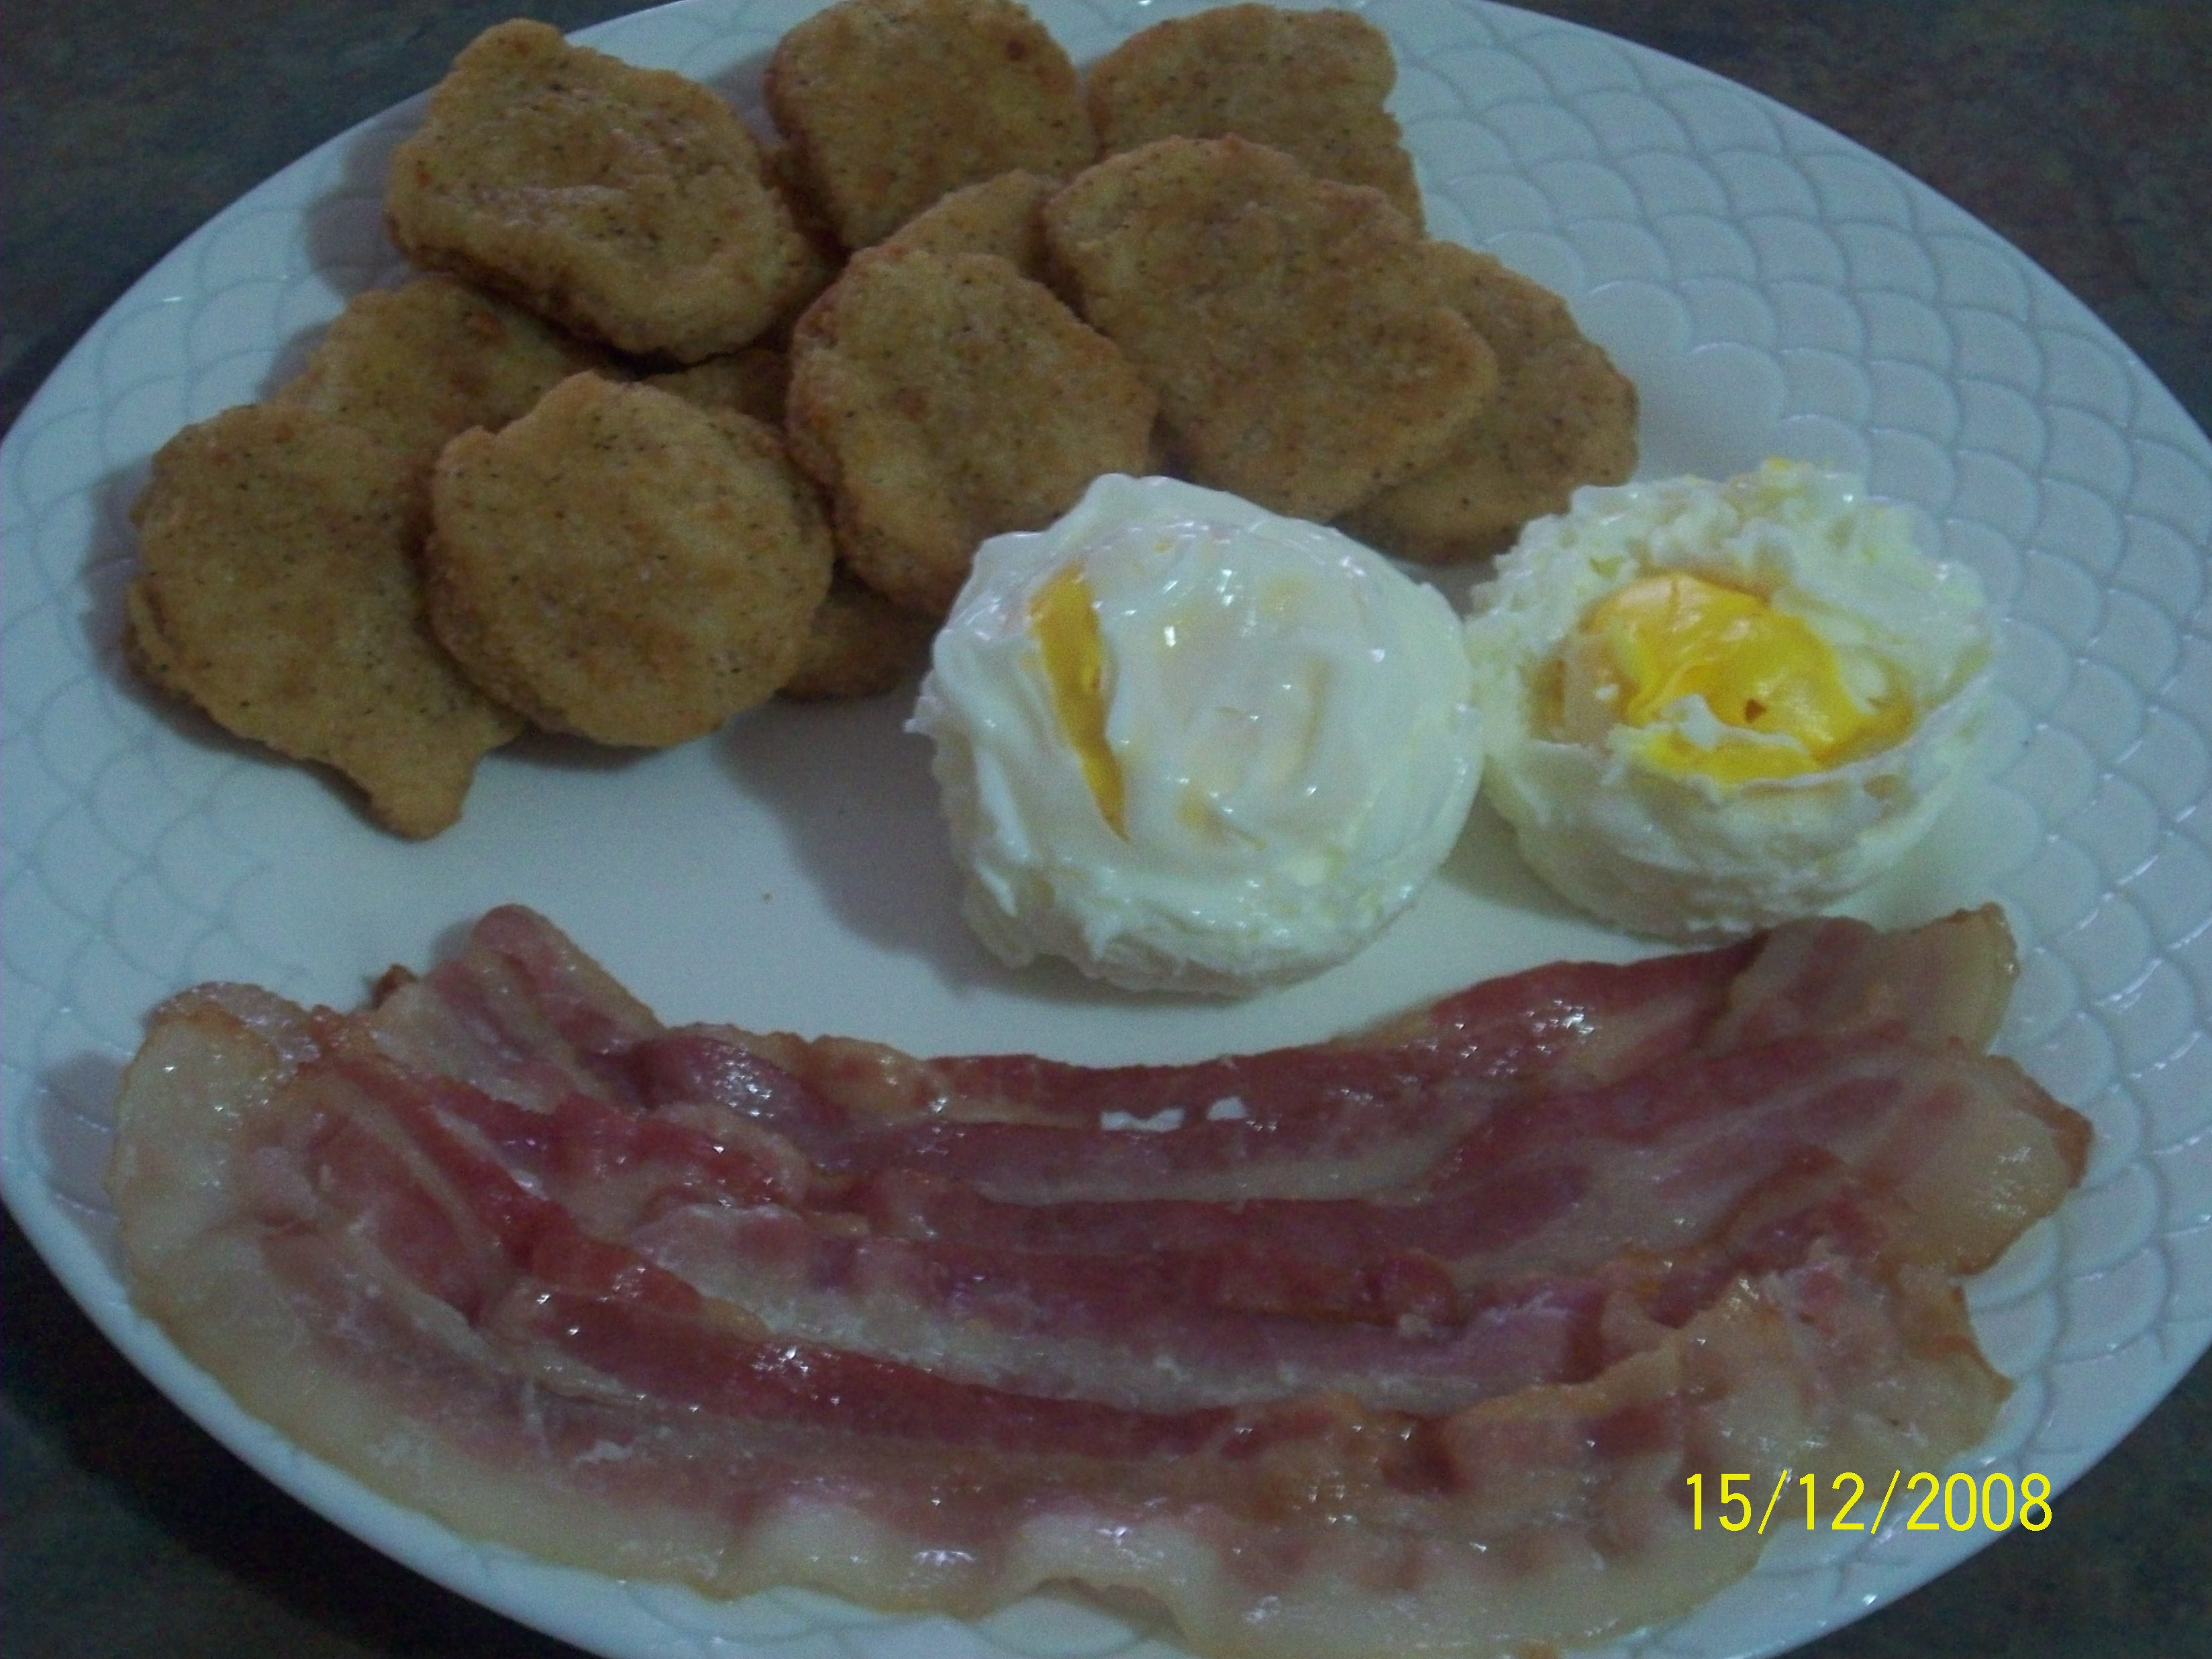 https://foodloader.net/cutie_2008-12-15_Breakfast_Chix_Nuggets_Bacons_and_Eggs.jpg